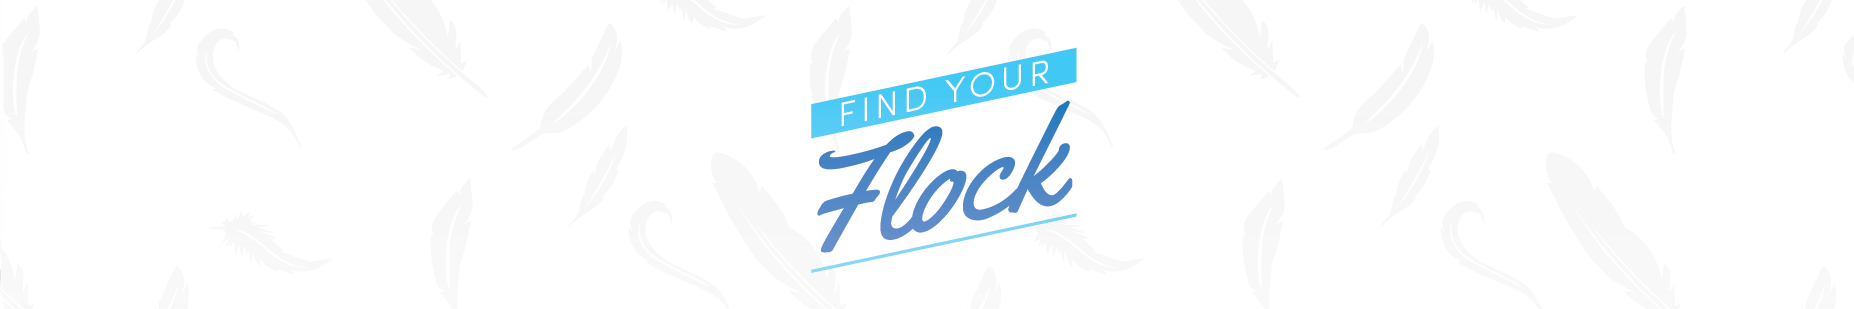 Find your Flock